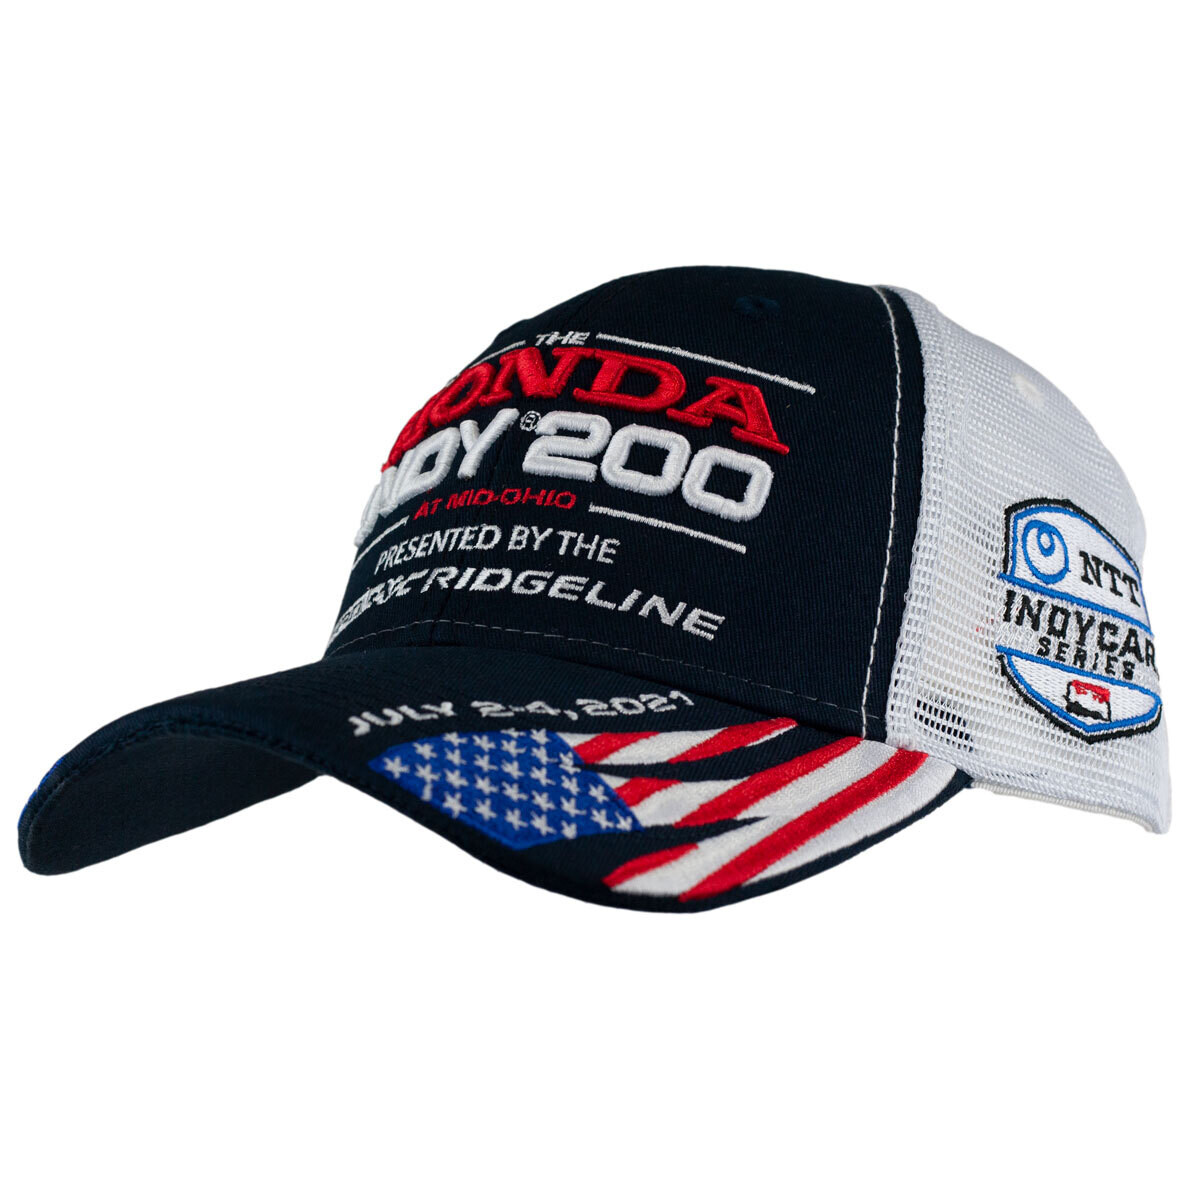 21' Indy Hat - Flags/Blue